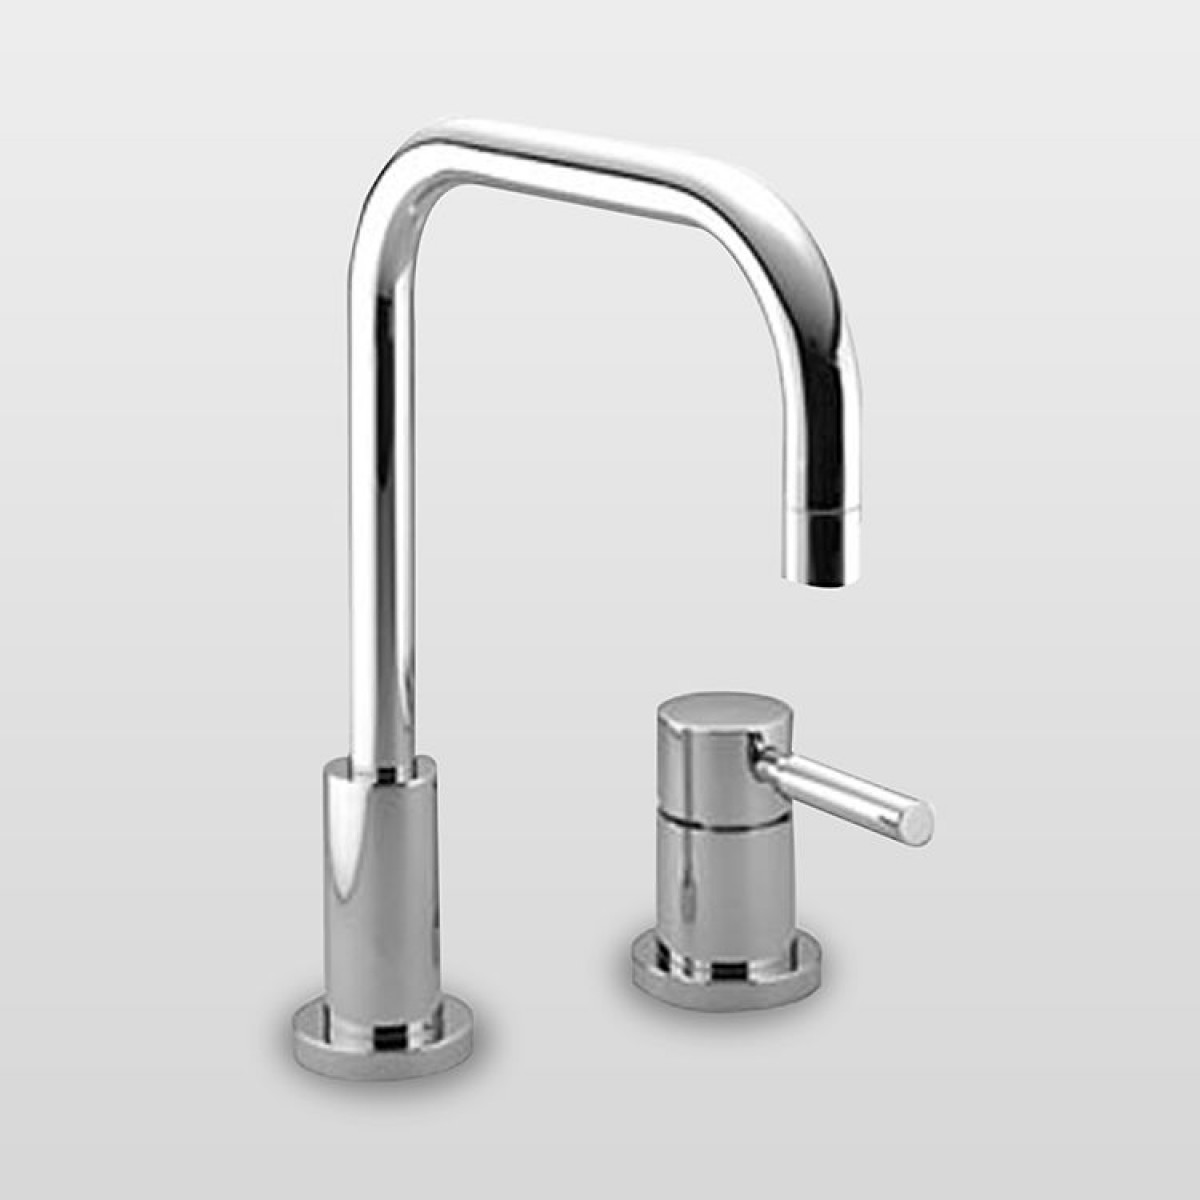 Bathroom Faucets Dornbracht kitchen: dornbracht shower | dornbracht kitchen faucet